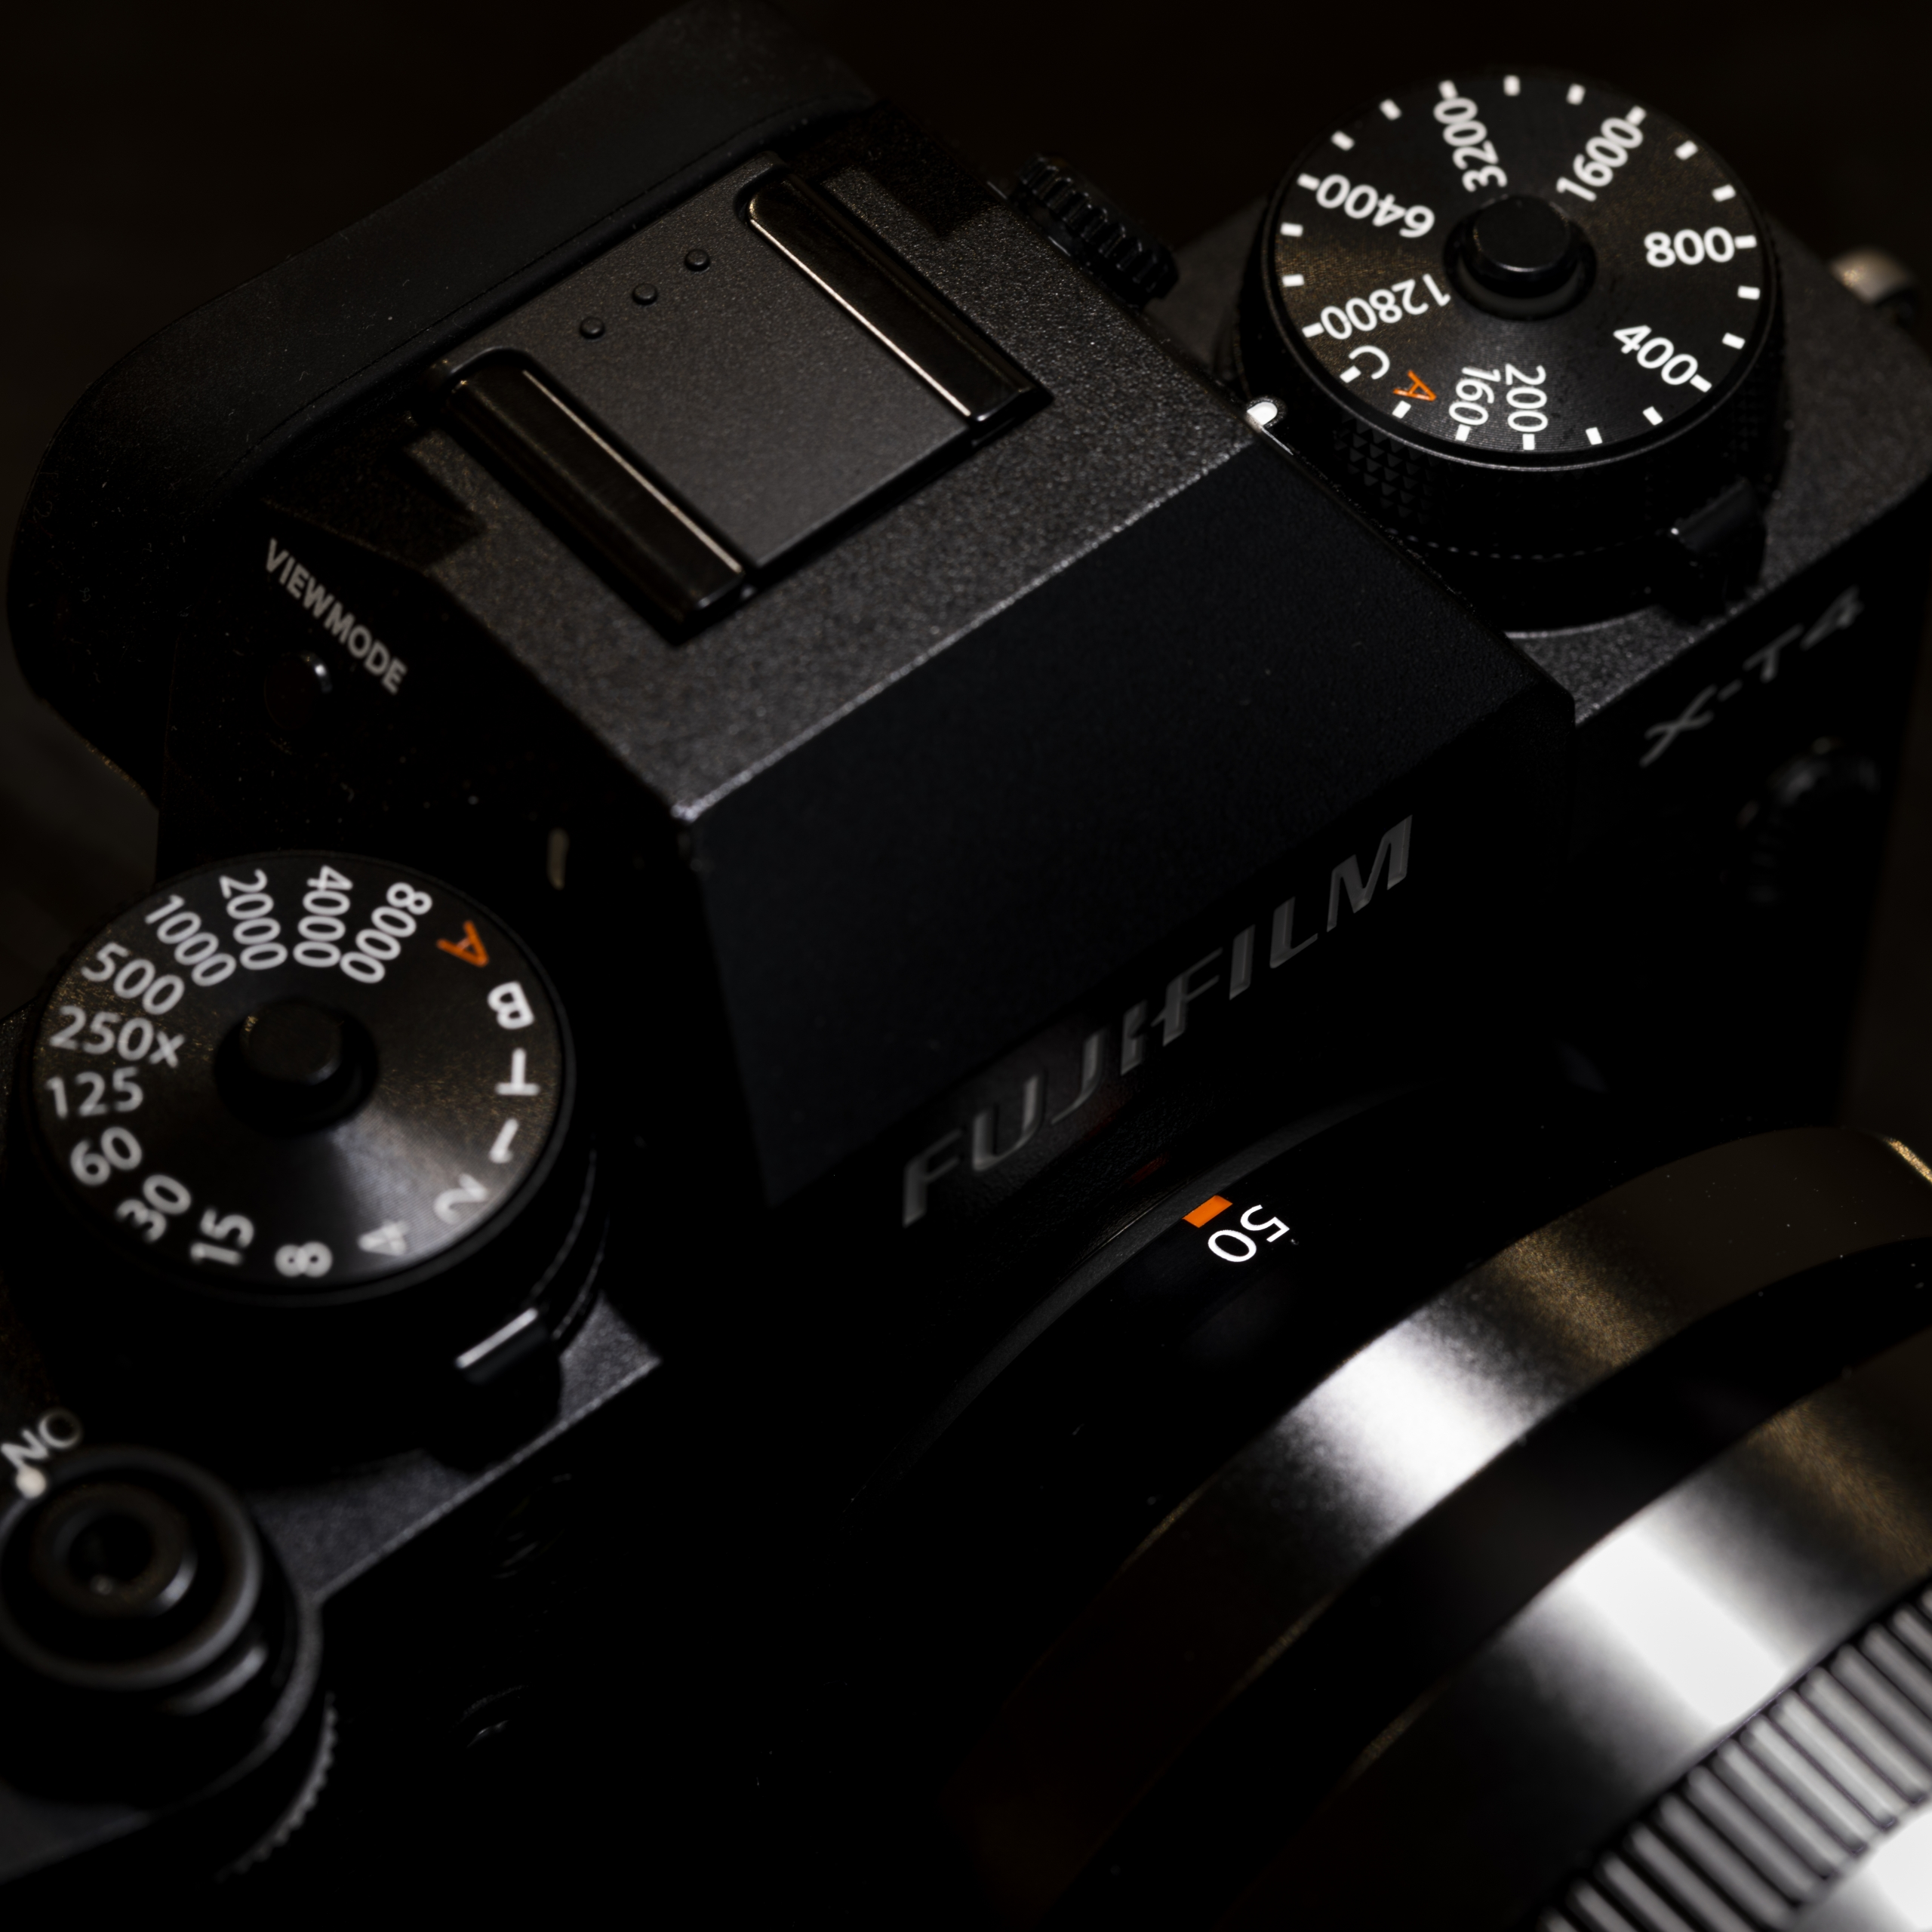 Does the Fujifilm XF 50mm f1.0 Live Up To Its Hype? Here's My Full Lens Review.